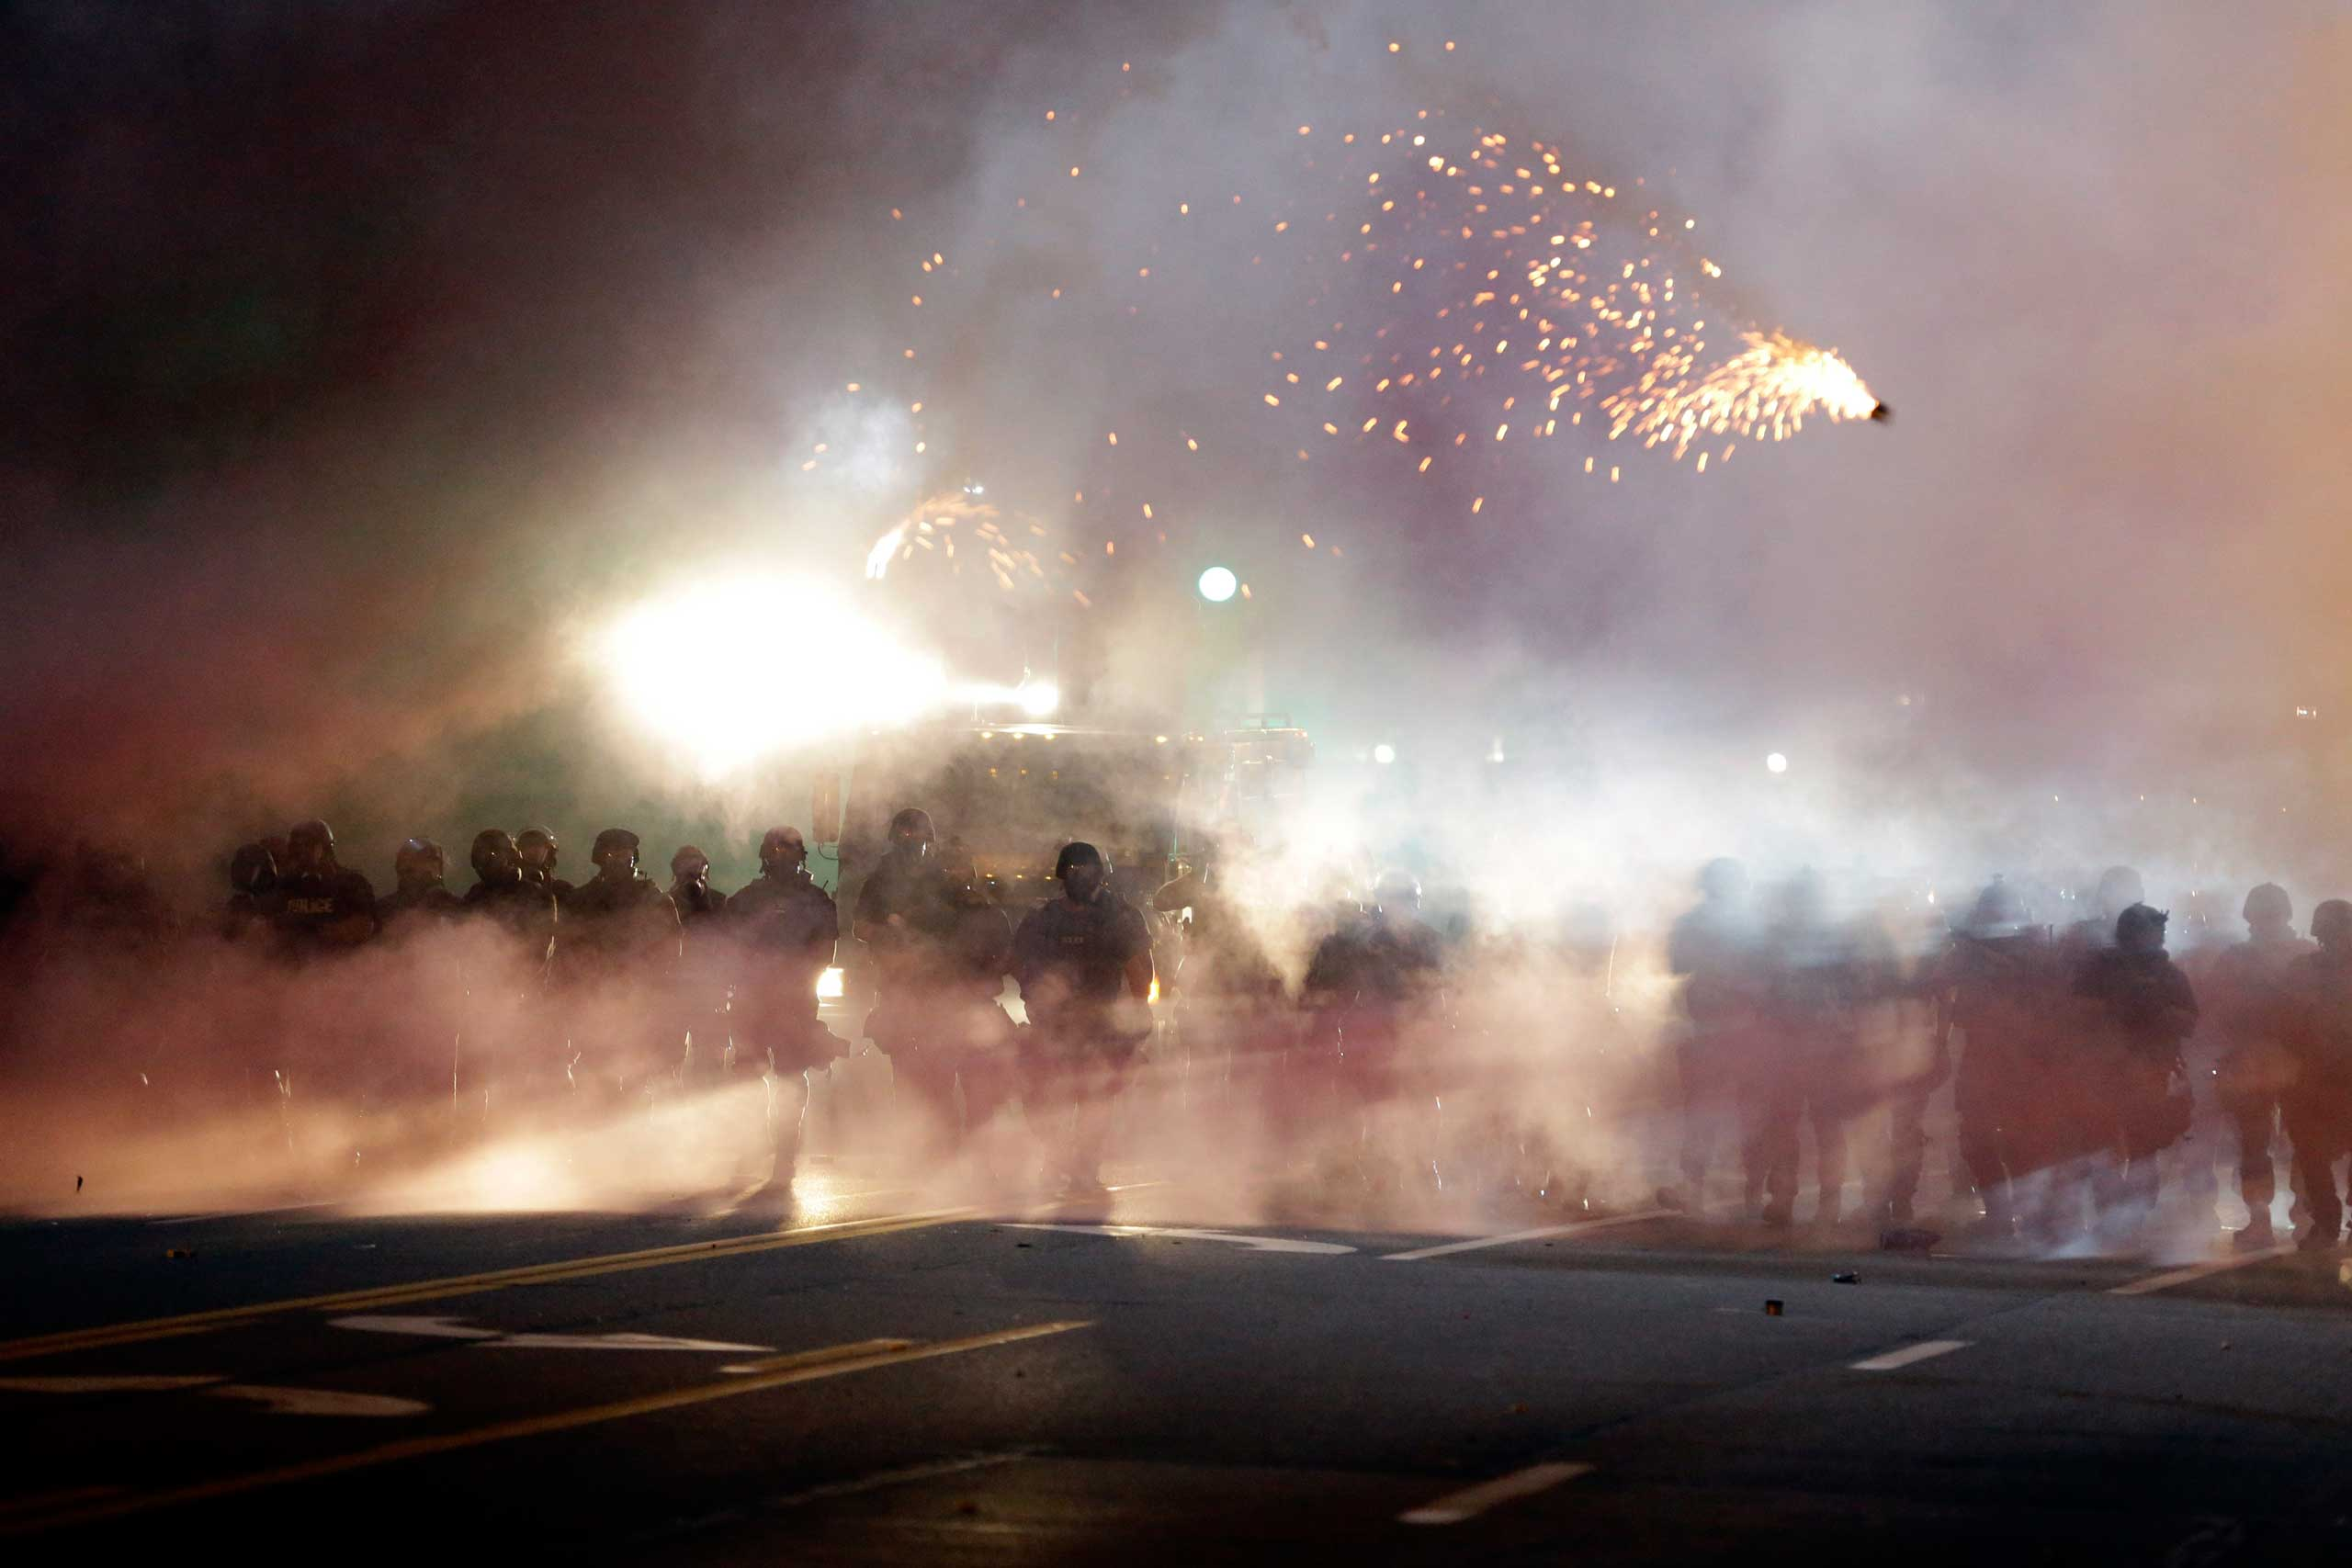 An explosive device deployed by police flies in the air as police and protesters clash after tear gas was thrown on Aug. 13, 2014, in Ferguson, Mo.